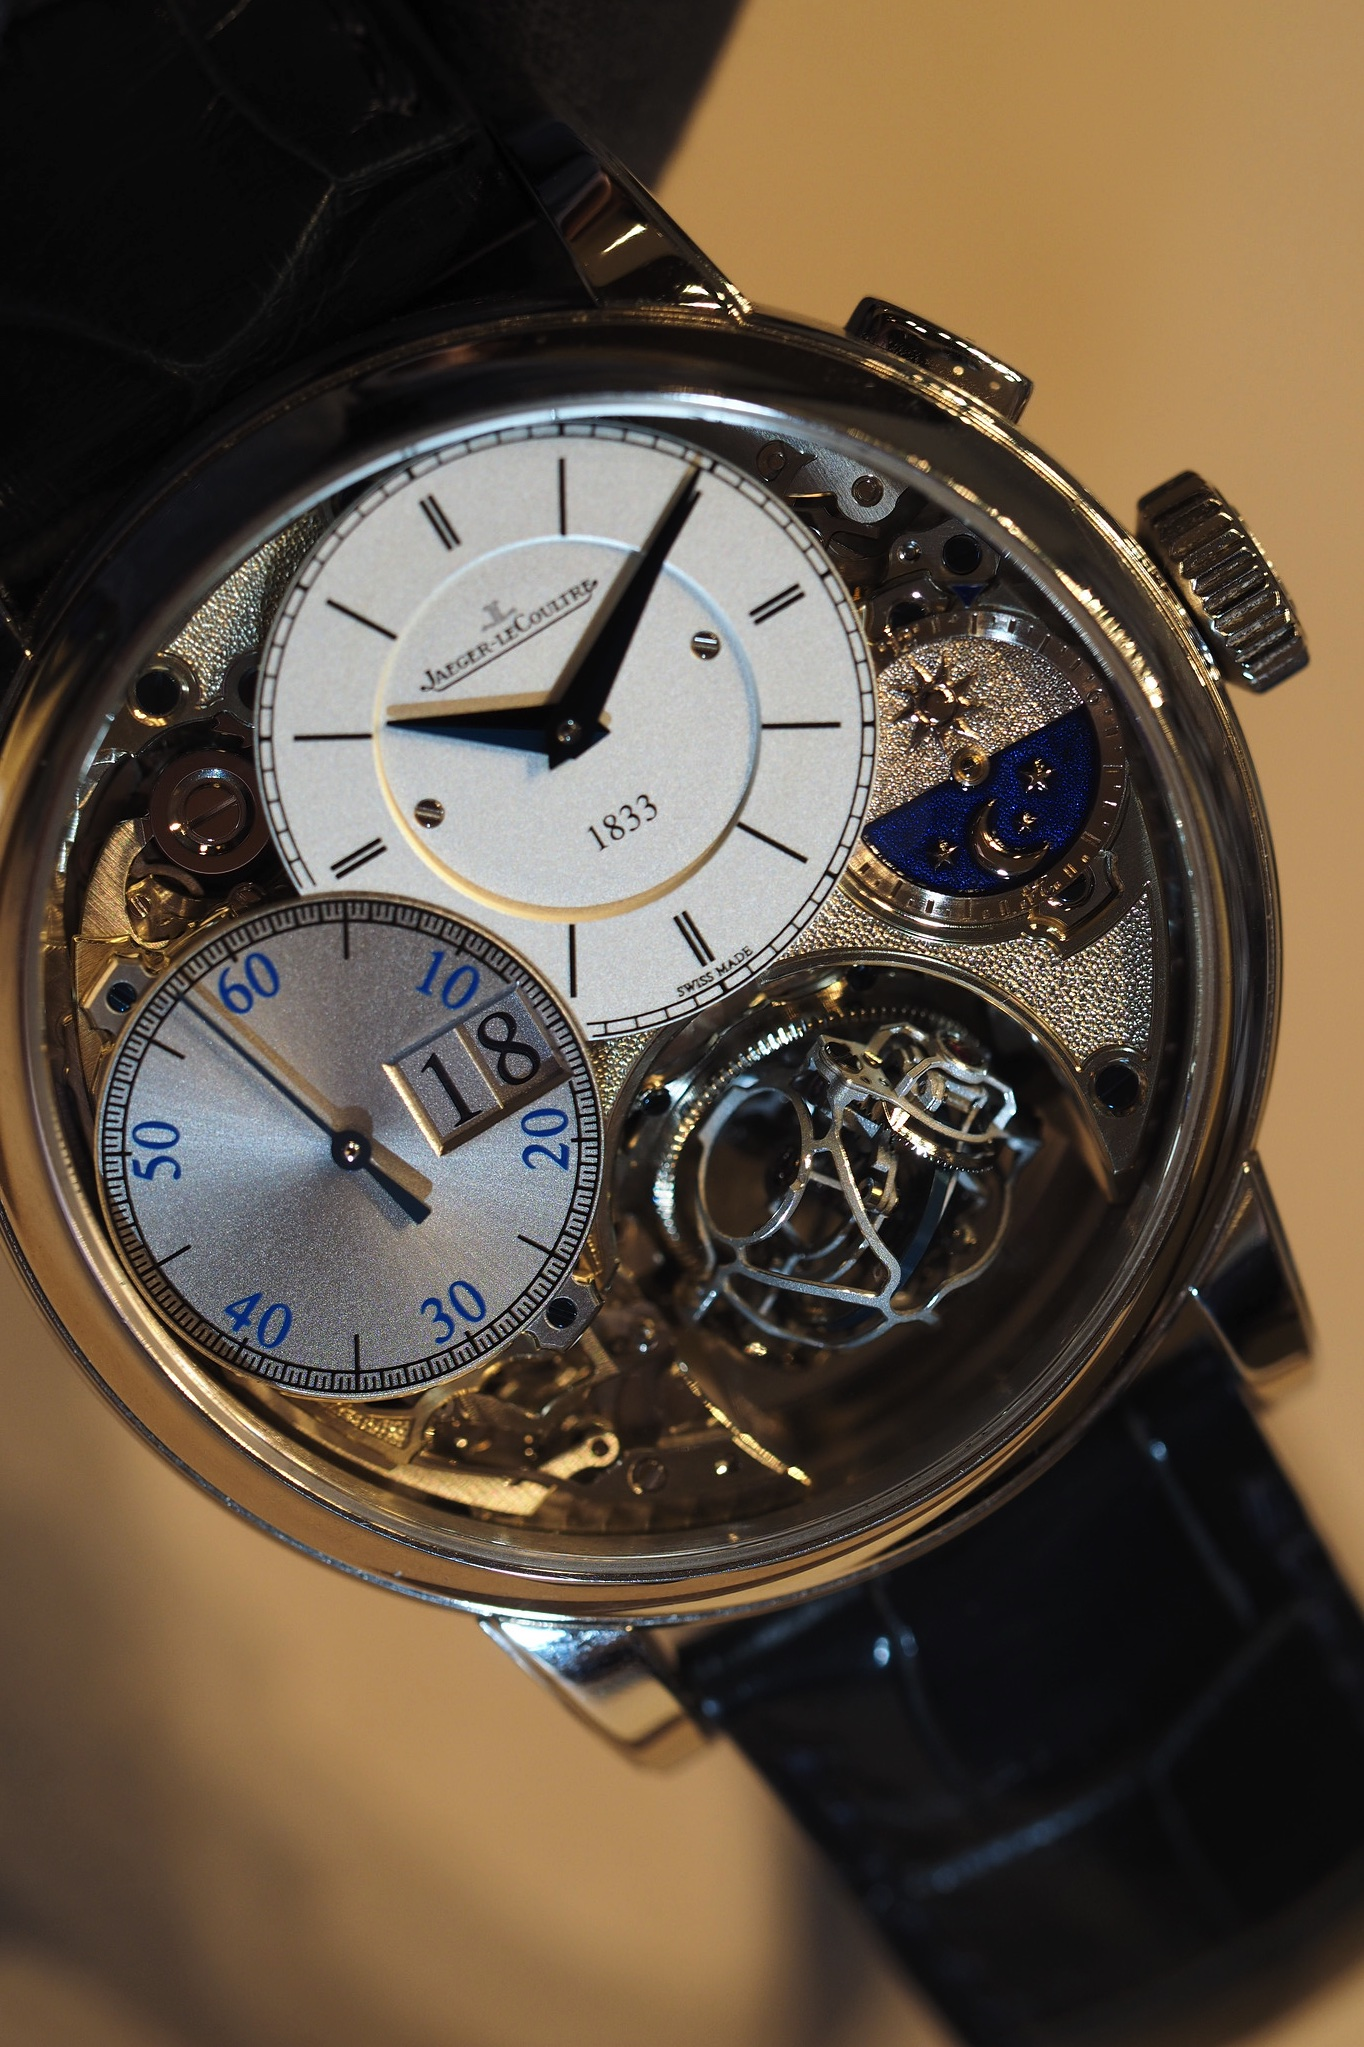 Hybris Mechanica Gyrotourbillon 3 Jubilee Hands-On